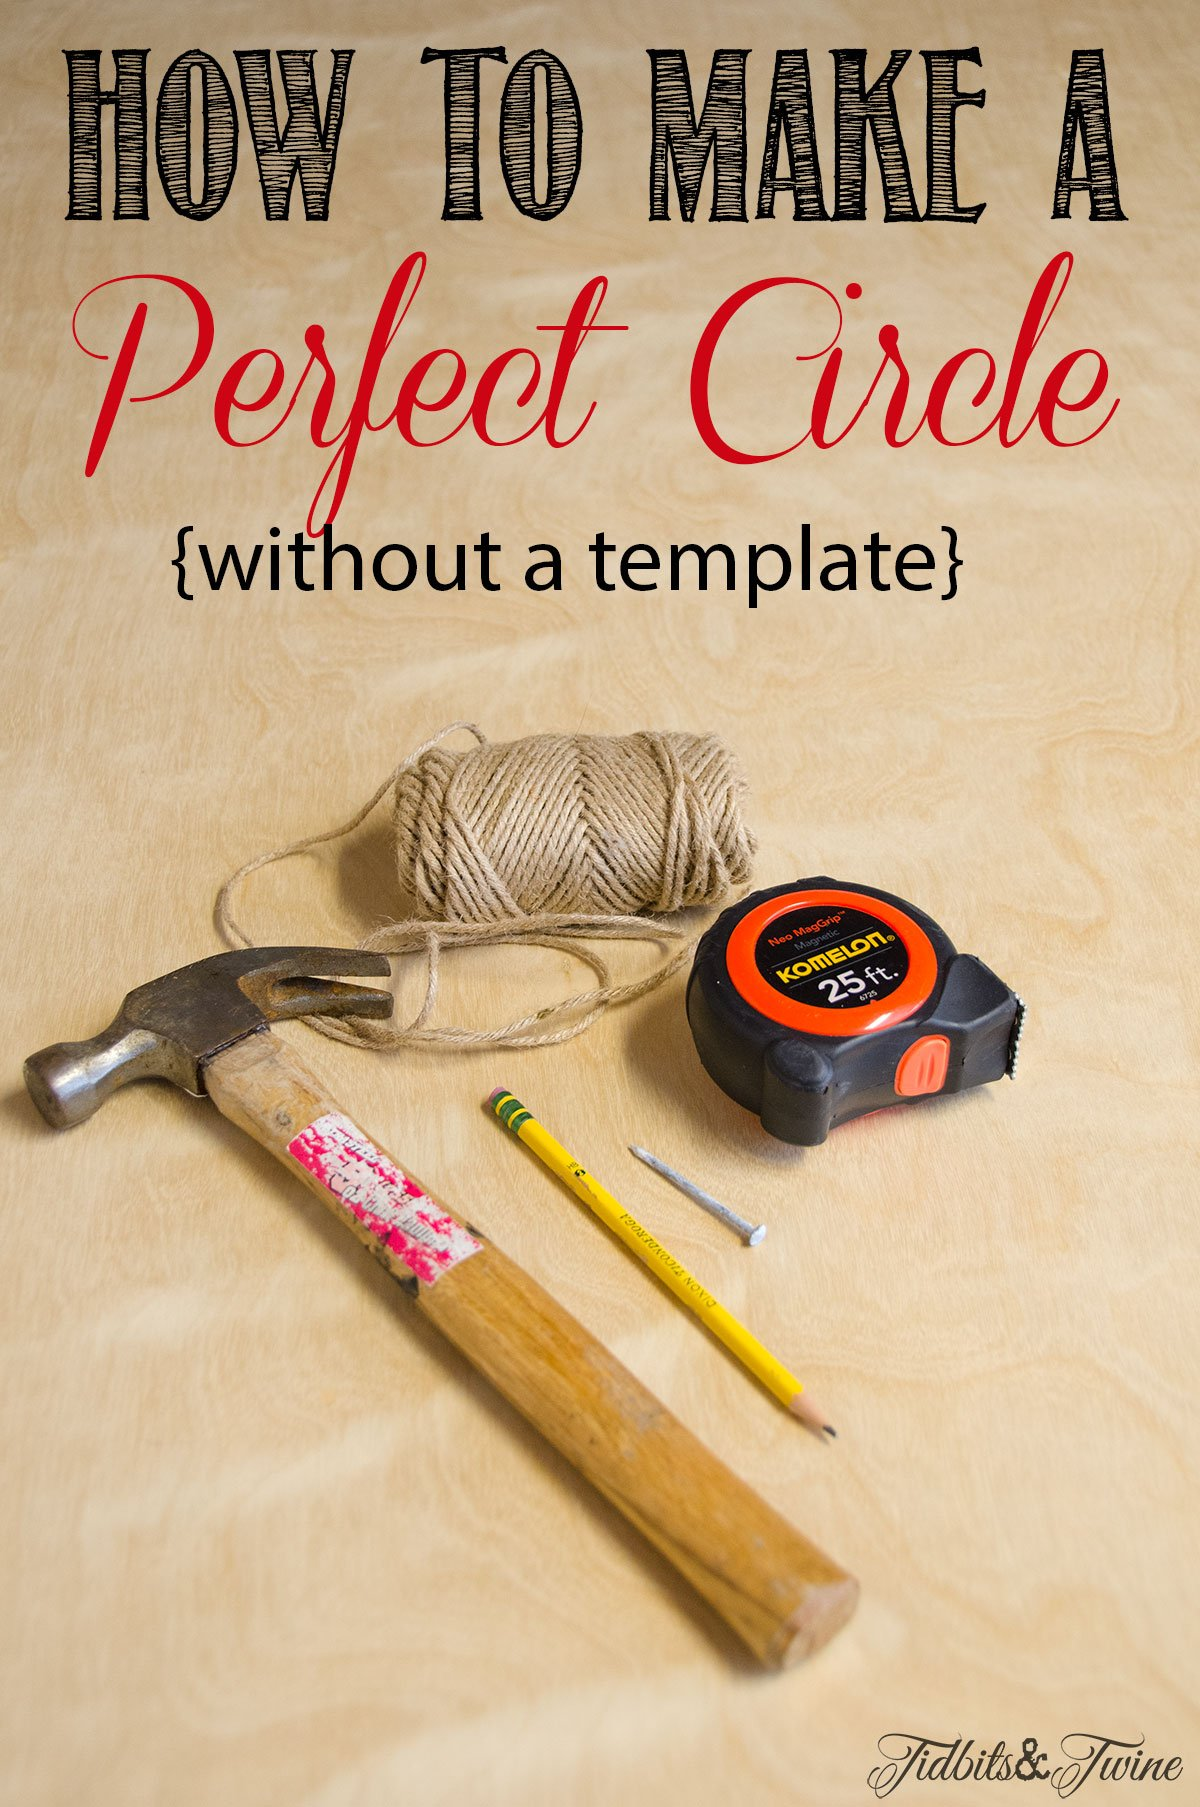 Tidbits&Twine- How to Make a Perfect Circle without a Templatte